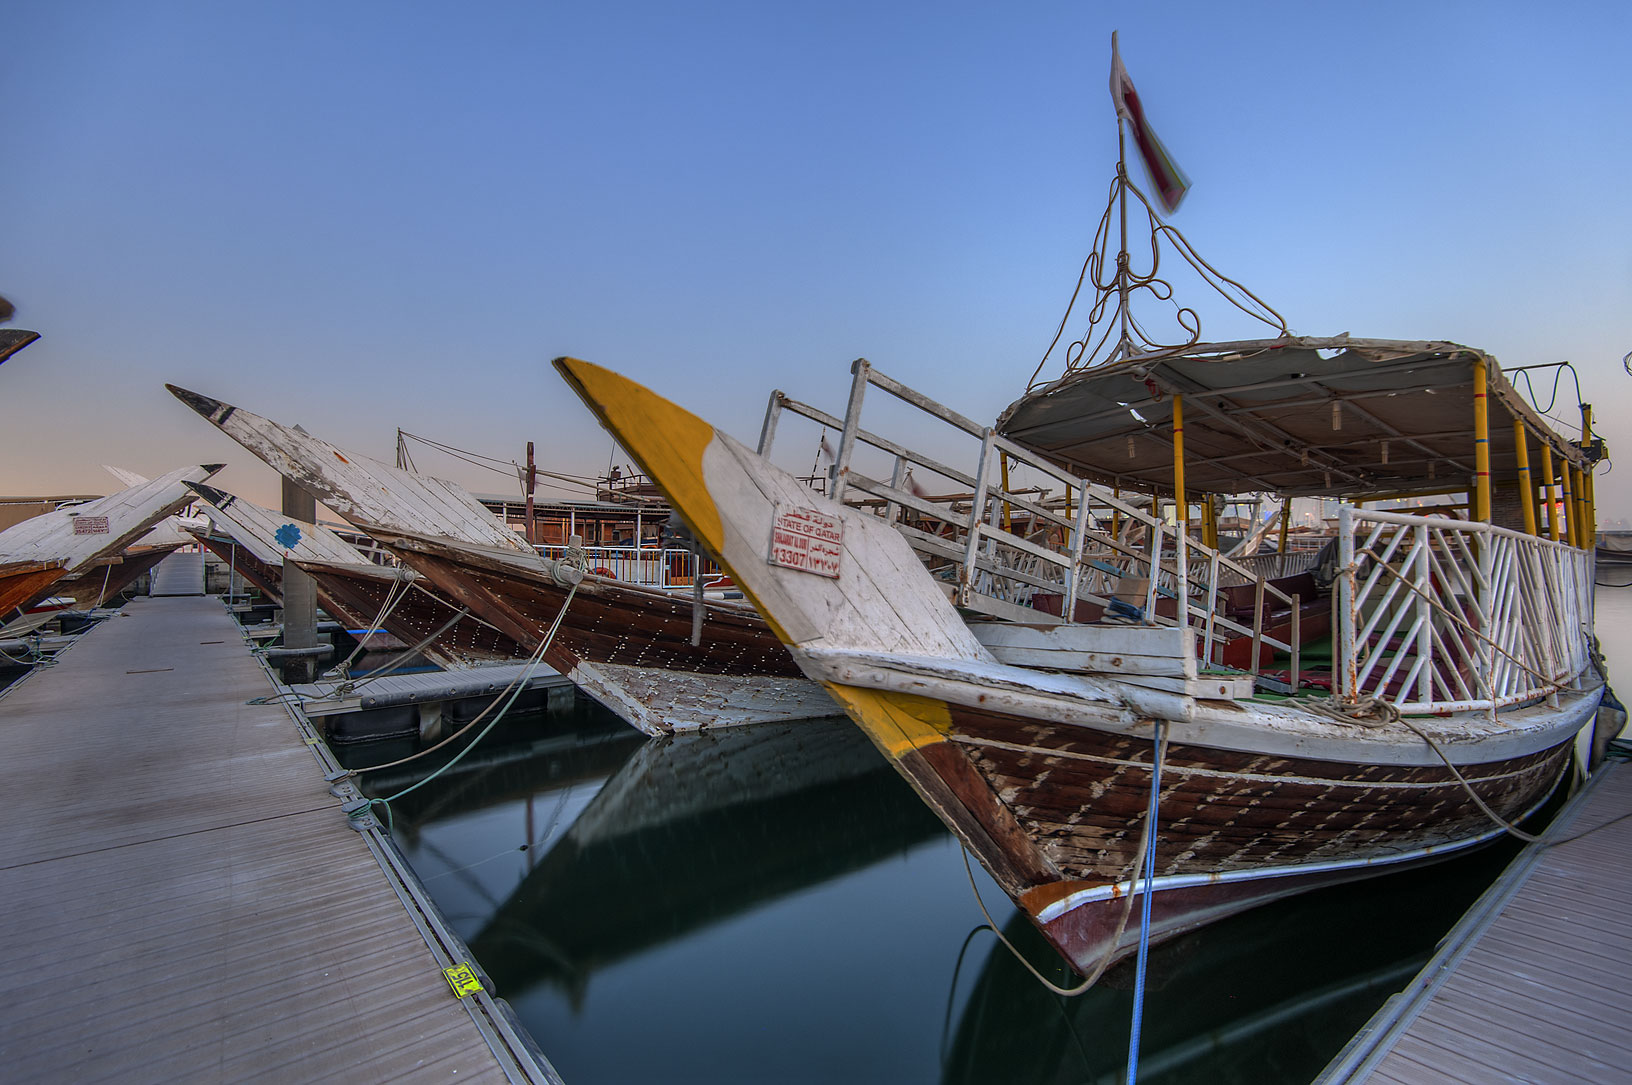 Boat pier near Corniche at morning. Doha, Qatar